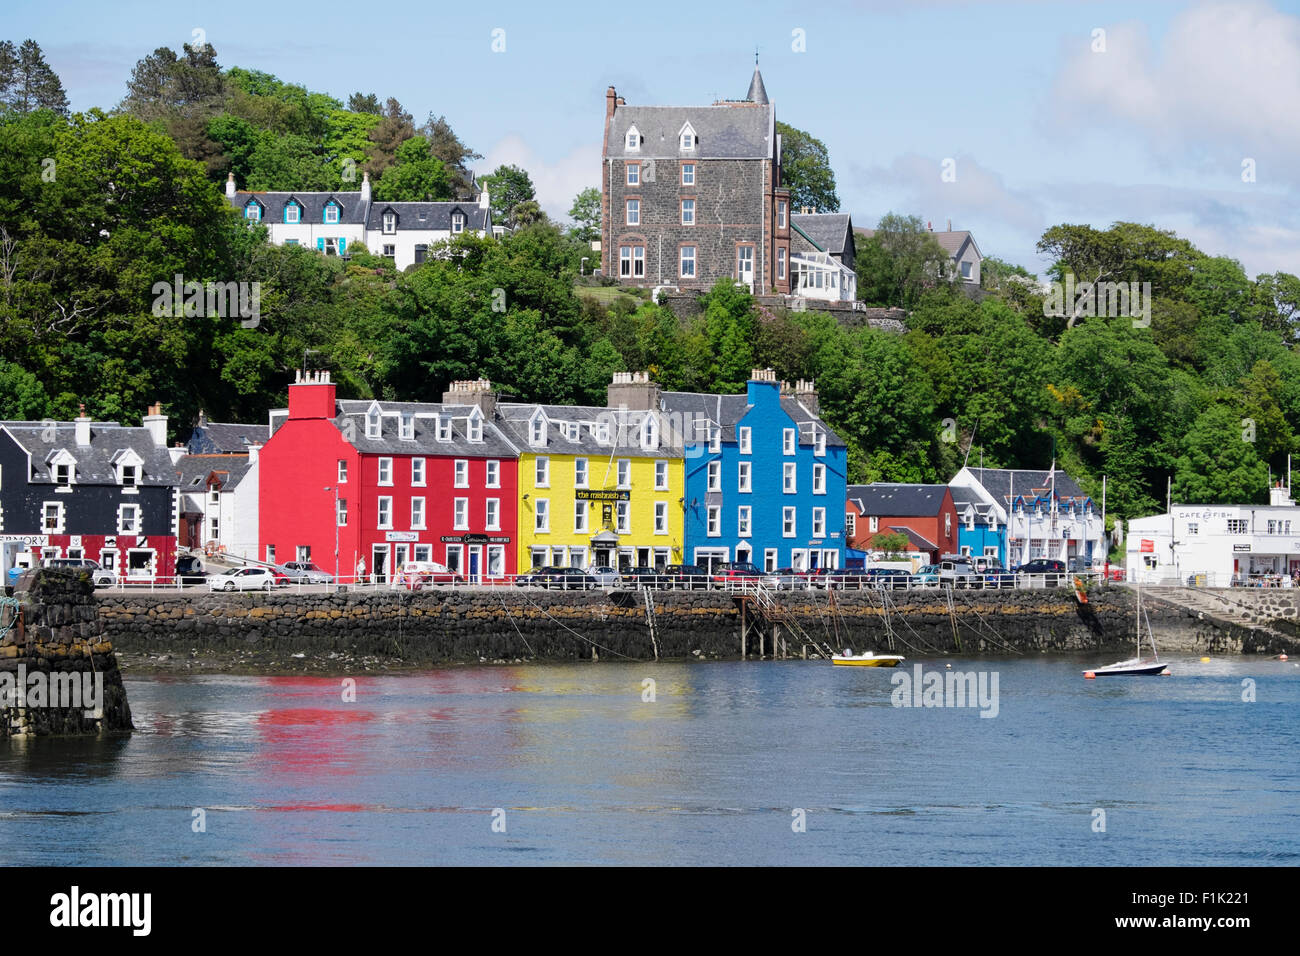 Tobermory - harbour side buildings Isle of Mull Scotland, UK LA007538 - Stock Image